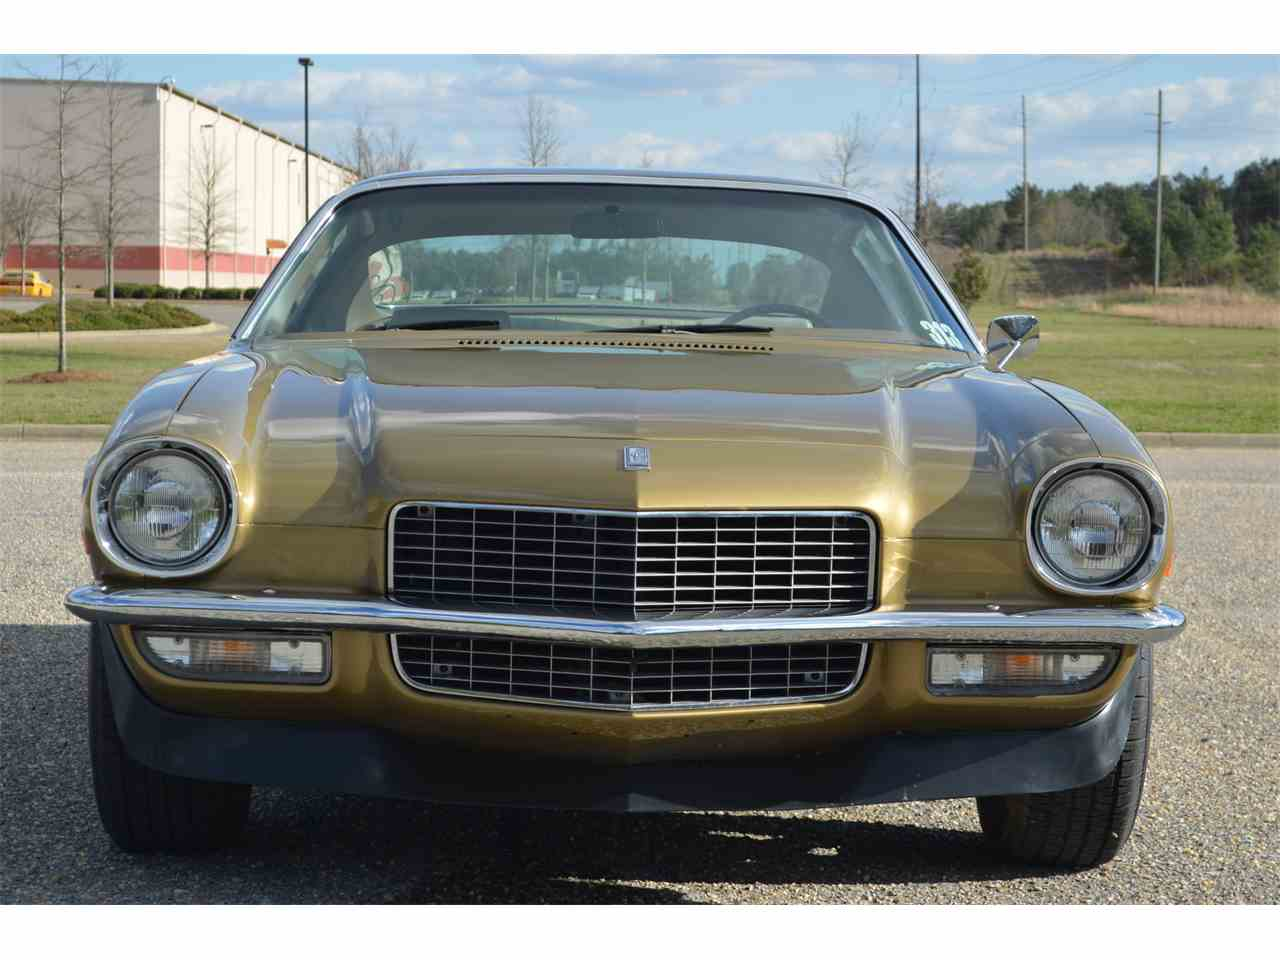 Large Picture of '70 Chevrolet Camaro located in Alabama - $27,900.00 Offered by Leaded Gas Classics - M517